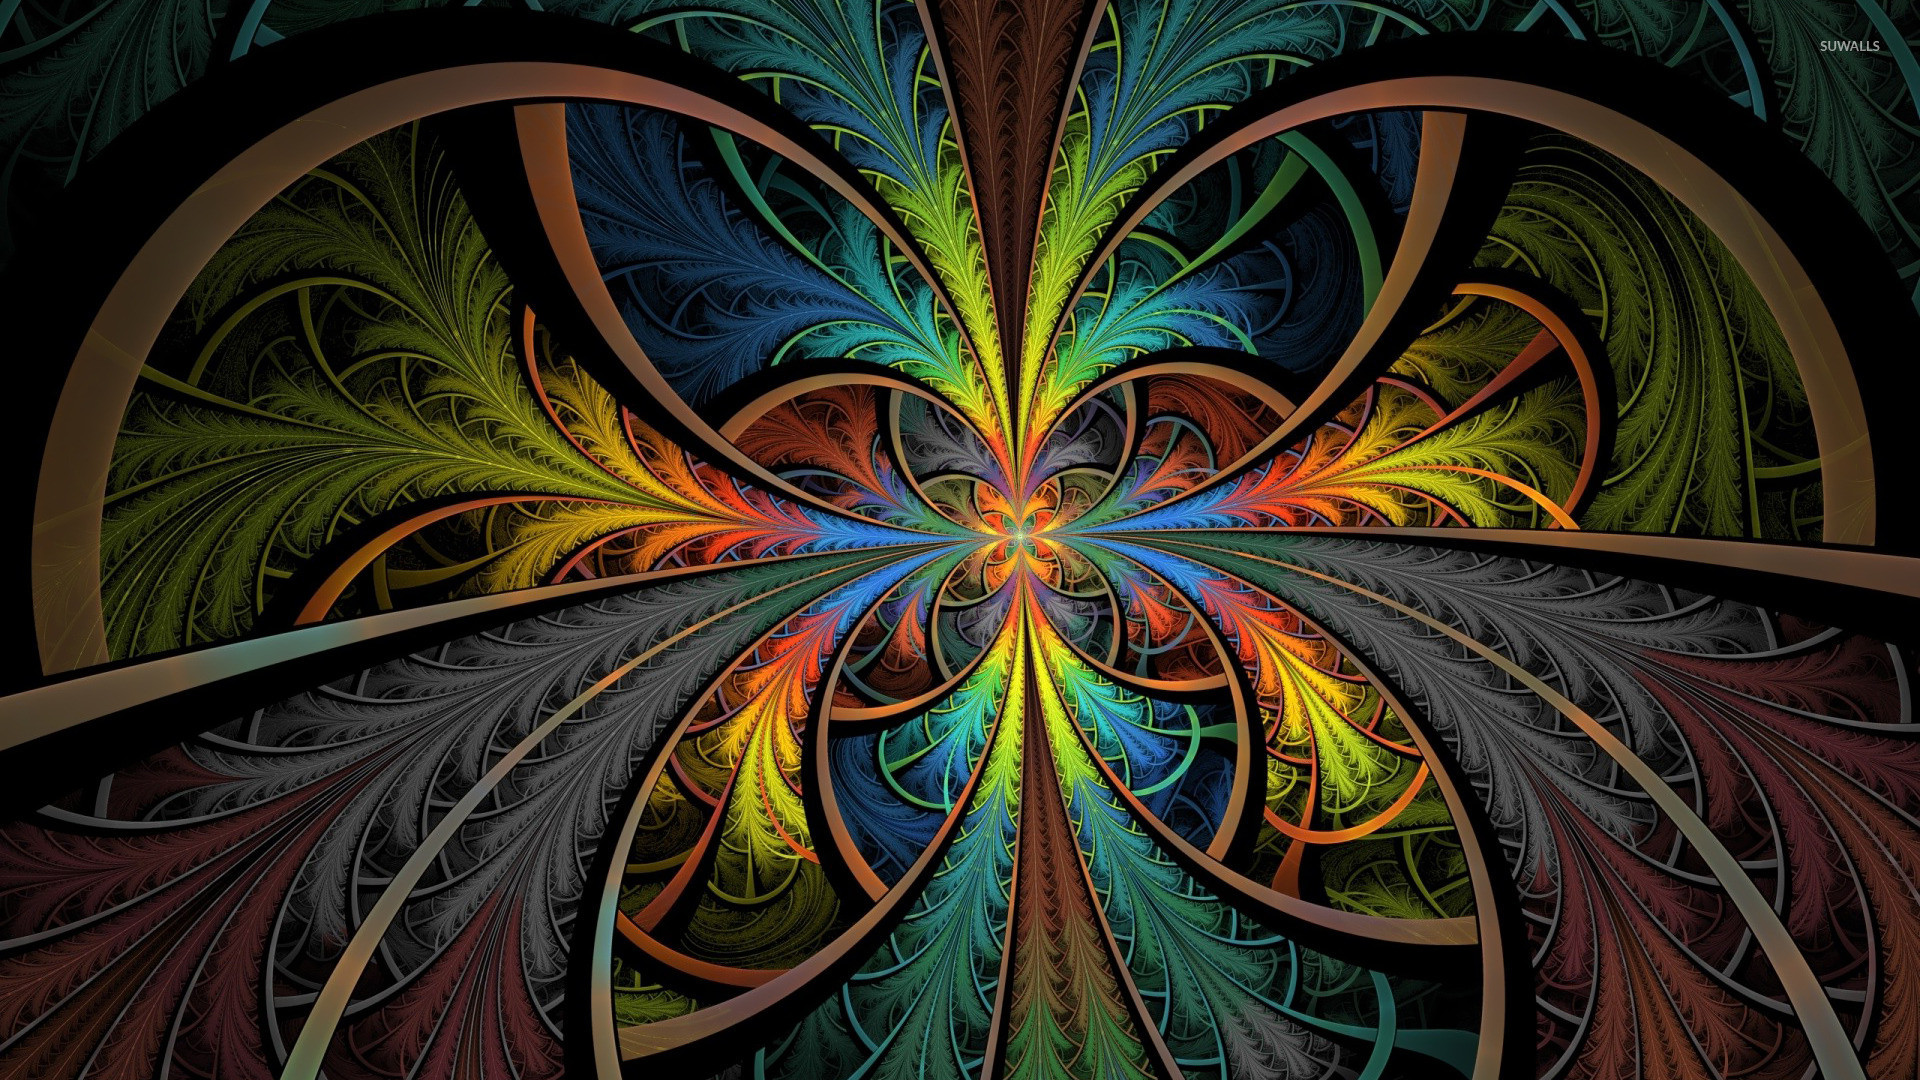 Abstract Trippy Brightness Lsd Psychedelic Hurt Colorful Mirrored Abstract 201257 Hd Wallpaper Backgrounds Download